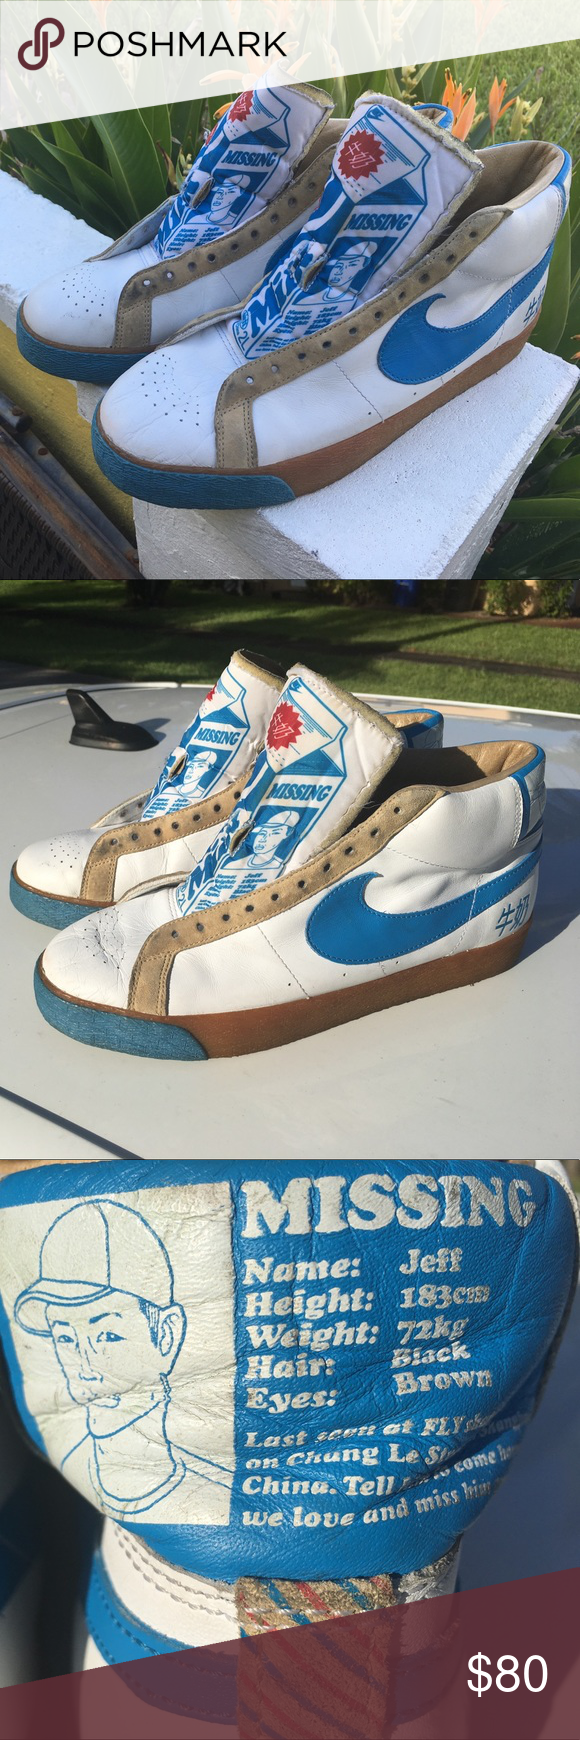 9530f189a2e2 Nike SB Fly Milk Blazer Premium Purchased in 2007 From Miami beach skate  shop